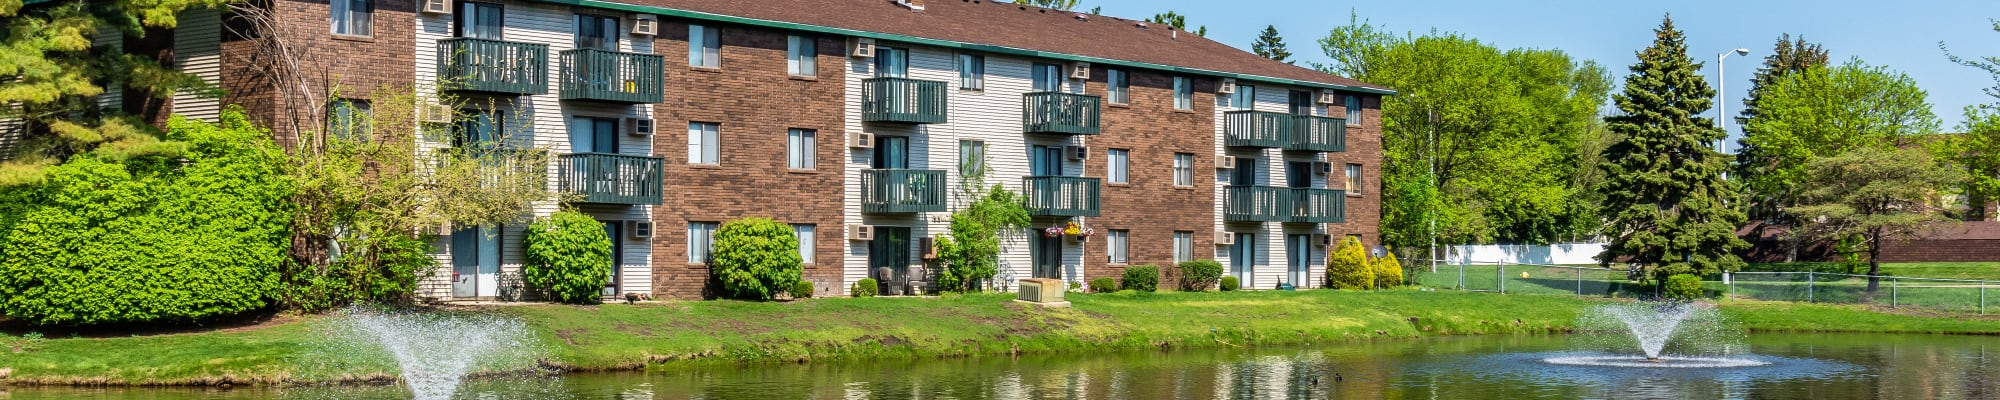 Apply at Oldebrook Apartments in Wyoming, Michigan